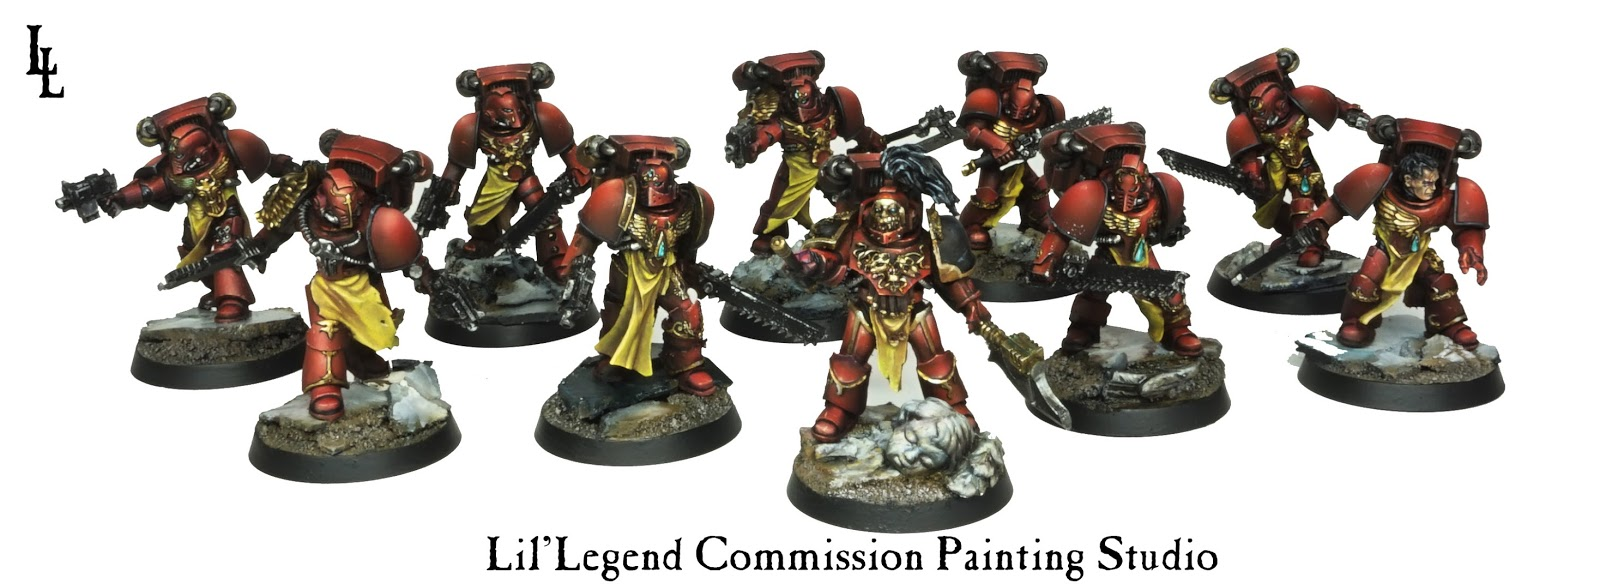 Ranks In Marine >> Blood Angels' Gorgeous Horus Heresy Assault Squads - Spikey Bits